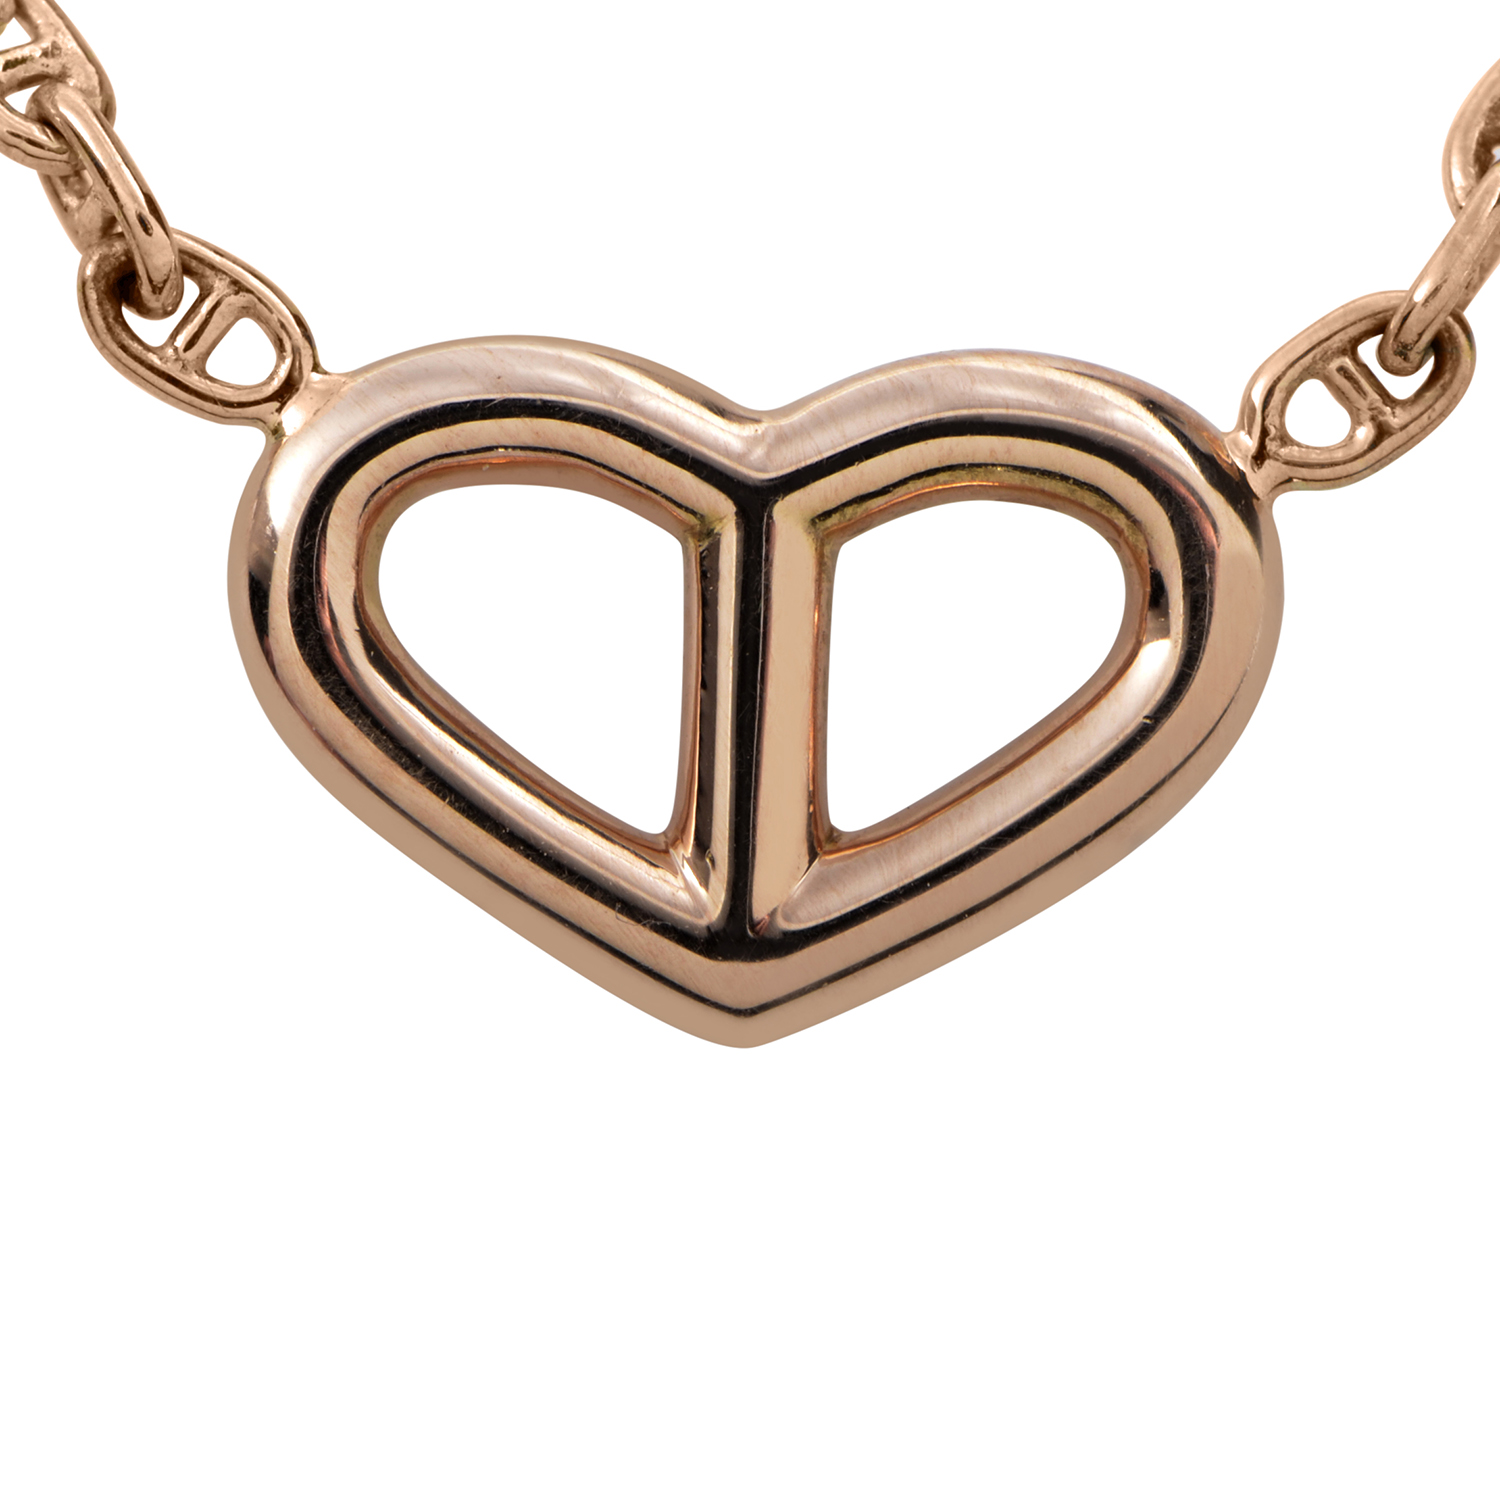 Hermès Women's Chaîne d'Ancre 18K Rose Gold Open Heart Necklace